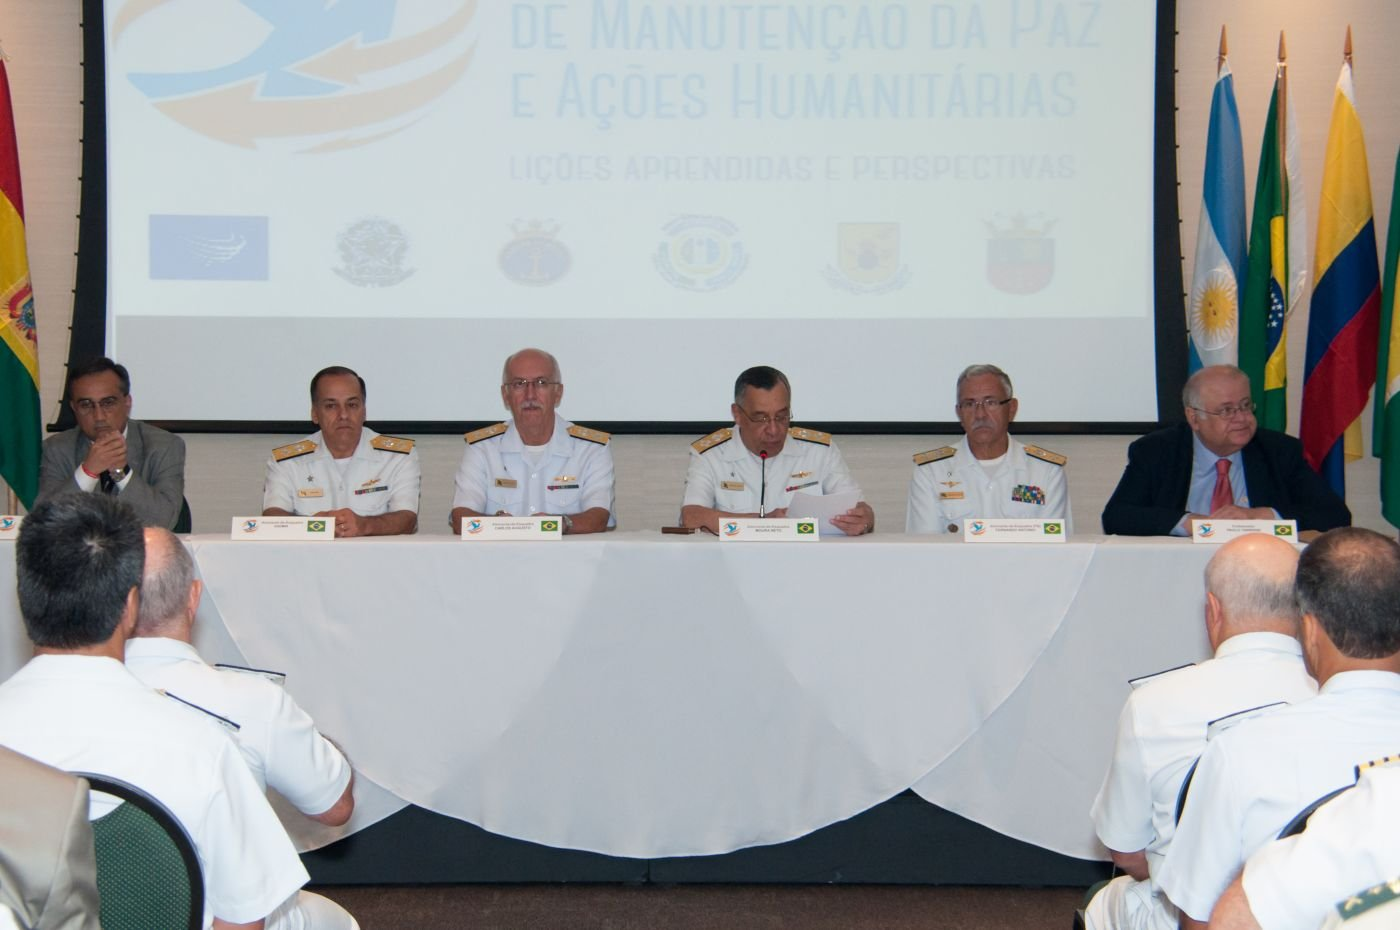 Seminar Discusses Brazilian Armed Forces' Participation in UN Peacekeeping Missions